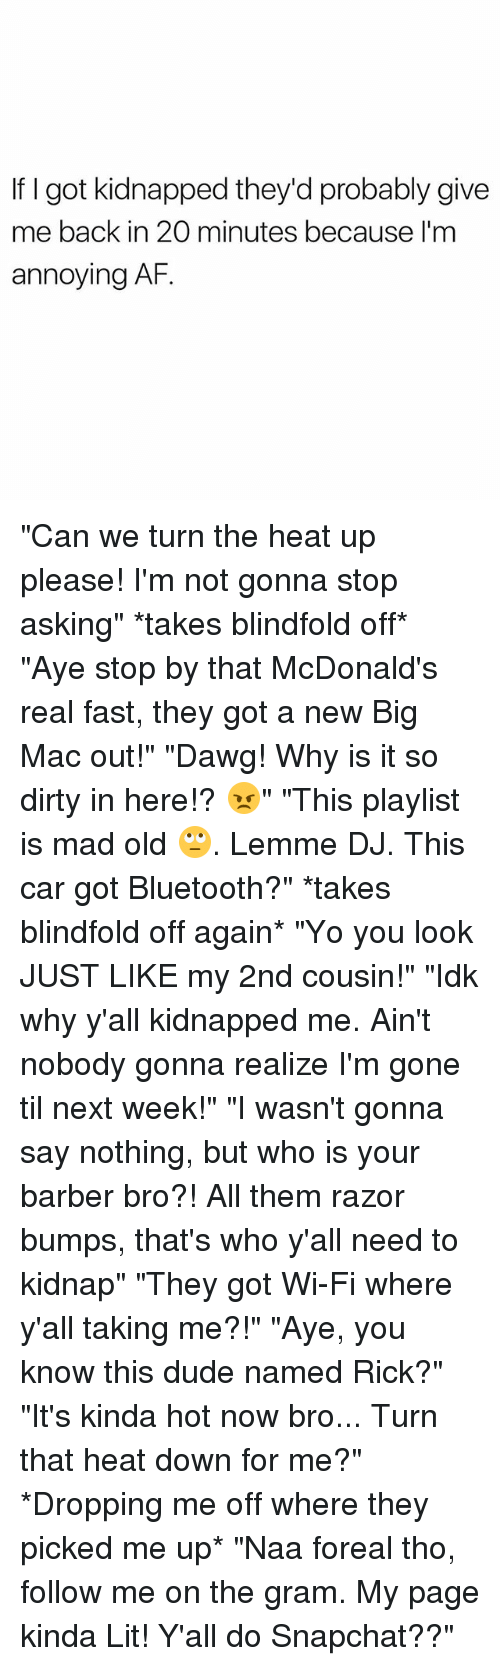 """Kidnapped Me: If I got kidnapped they'd probably give  me back in 20 minutes because I'm  annoying AF. """"Can we turn the heat up please! I'm not gonna stop asking"""" *takes blindfold off* """"Aye stop by that McDonald's real fast, they got a new Big Mac out!"""" """"Dawg! Why is it so dirty in here!? 😠"""" """"This playlist is mad old 🙄. Lemme DJ. This car got Bluetooth?"""" *takes blindfold off again* """"Yo you look JUST LIKE my 2nd cousin!"""" """"Idk why y'all kidnapped me. Ain't nobody gonna realize I'm gone til next week!"""" """"I wasn't gonna say nothing, but who is your barber bro?! All them razor bumps, that's who y'all need to kidnap"""" """"They got Wi-Fi where y'all taking me?!"""" """"Aye, you know this dude named Rick?"""" """"It's kinda hot now bro... Turn that heat down for me?"""" *Dropping me off where they picked me up* """"Naa foreal tho, follow me on the gram. My page kinda Lit! Y'all do Snapchat??"""""""